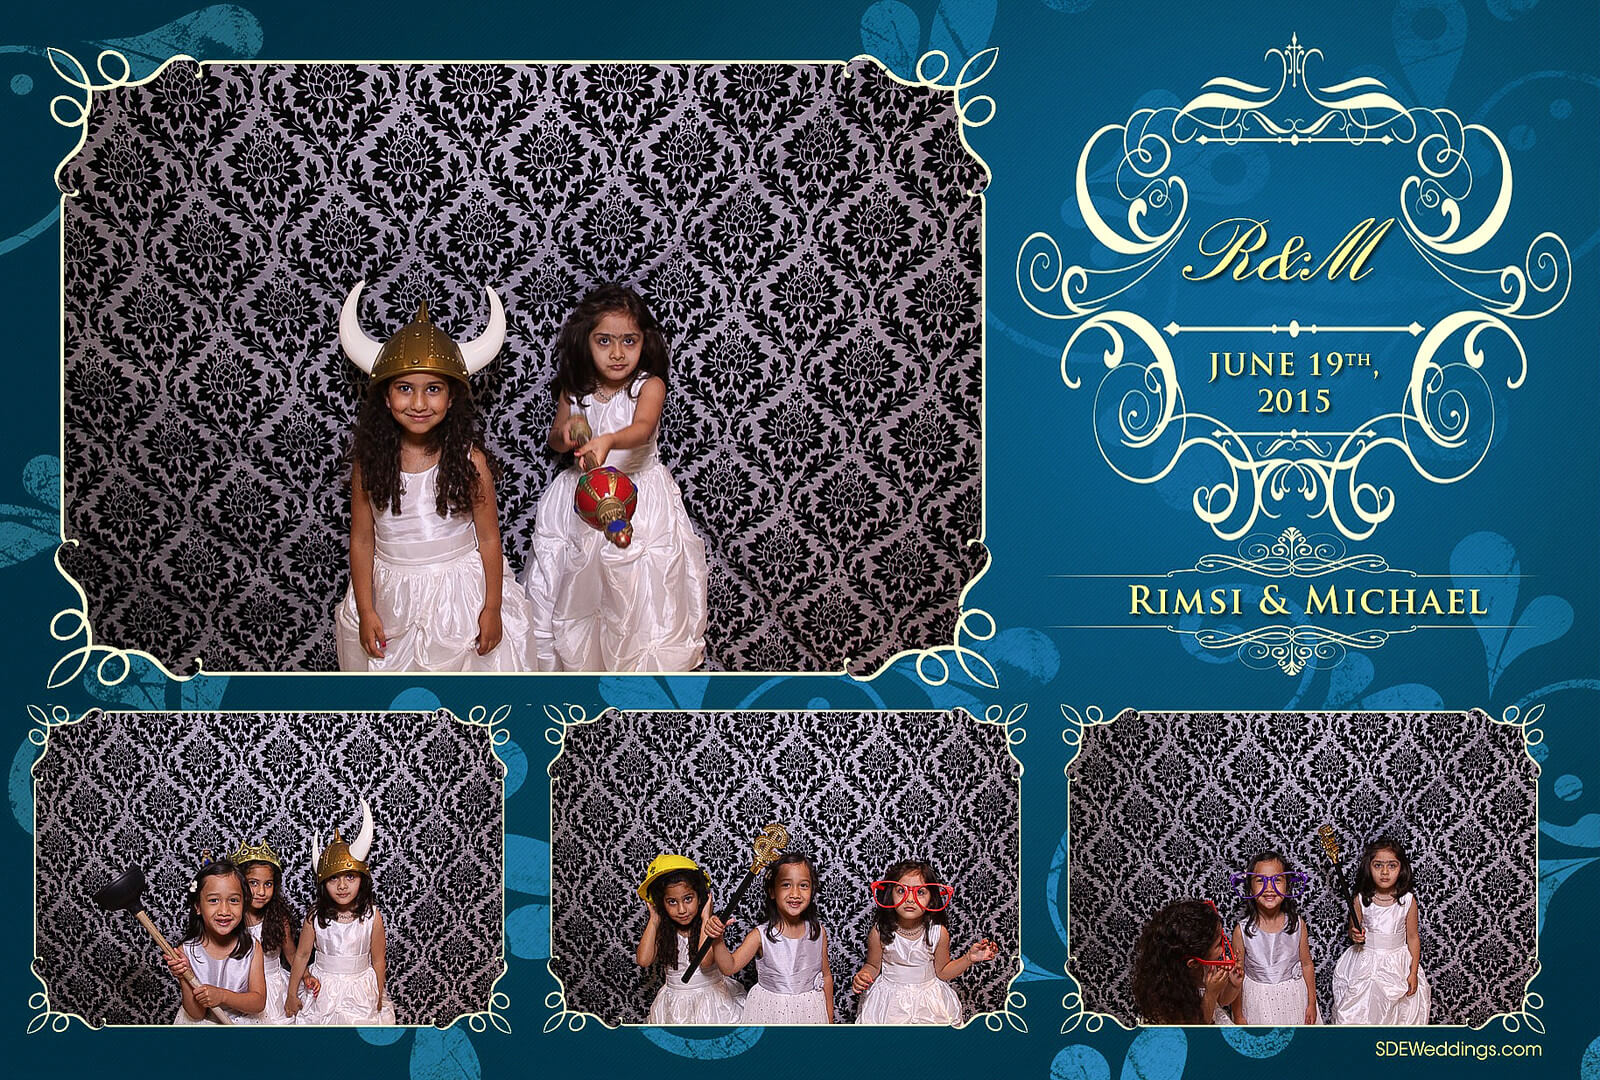 Toronto Italian Borgata Wedding Photo Booth Rental 5